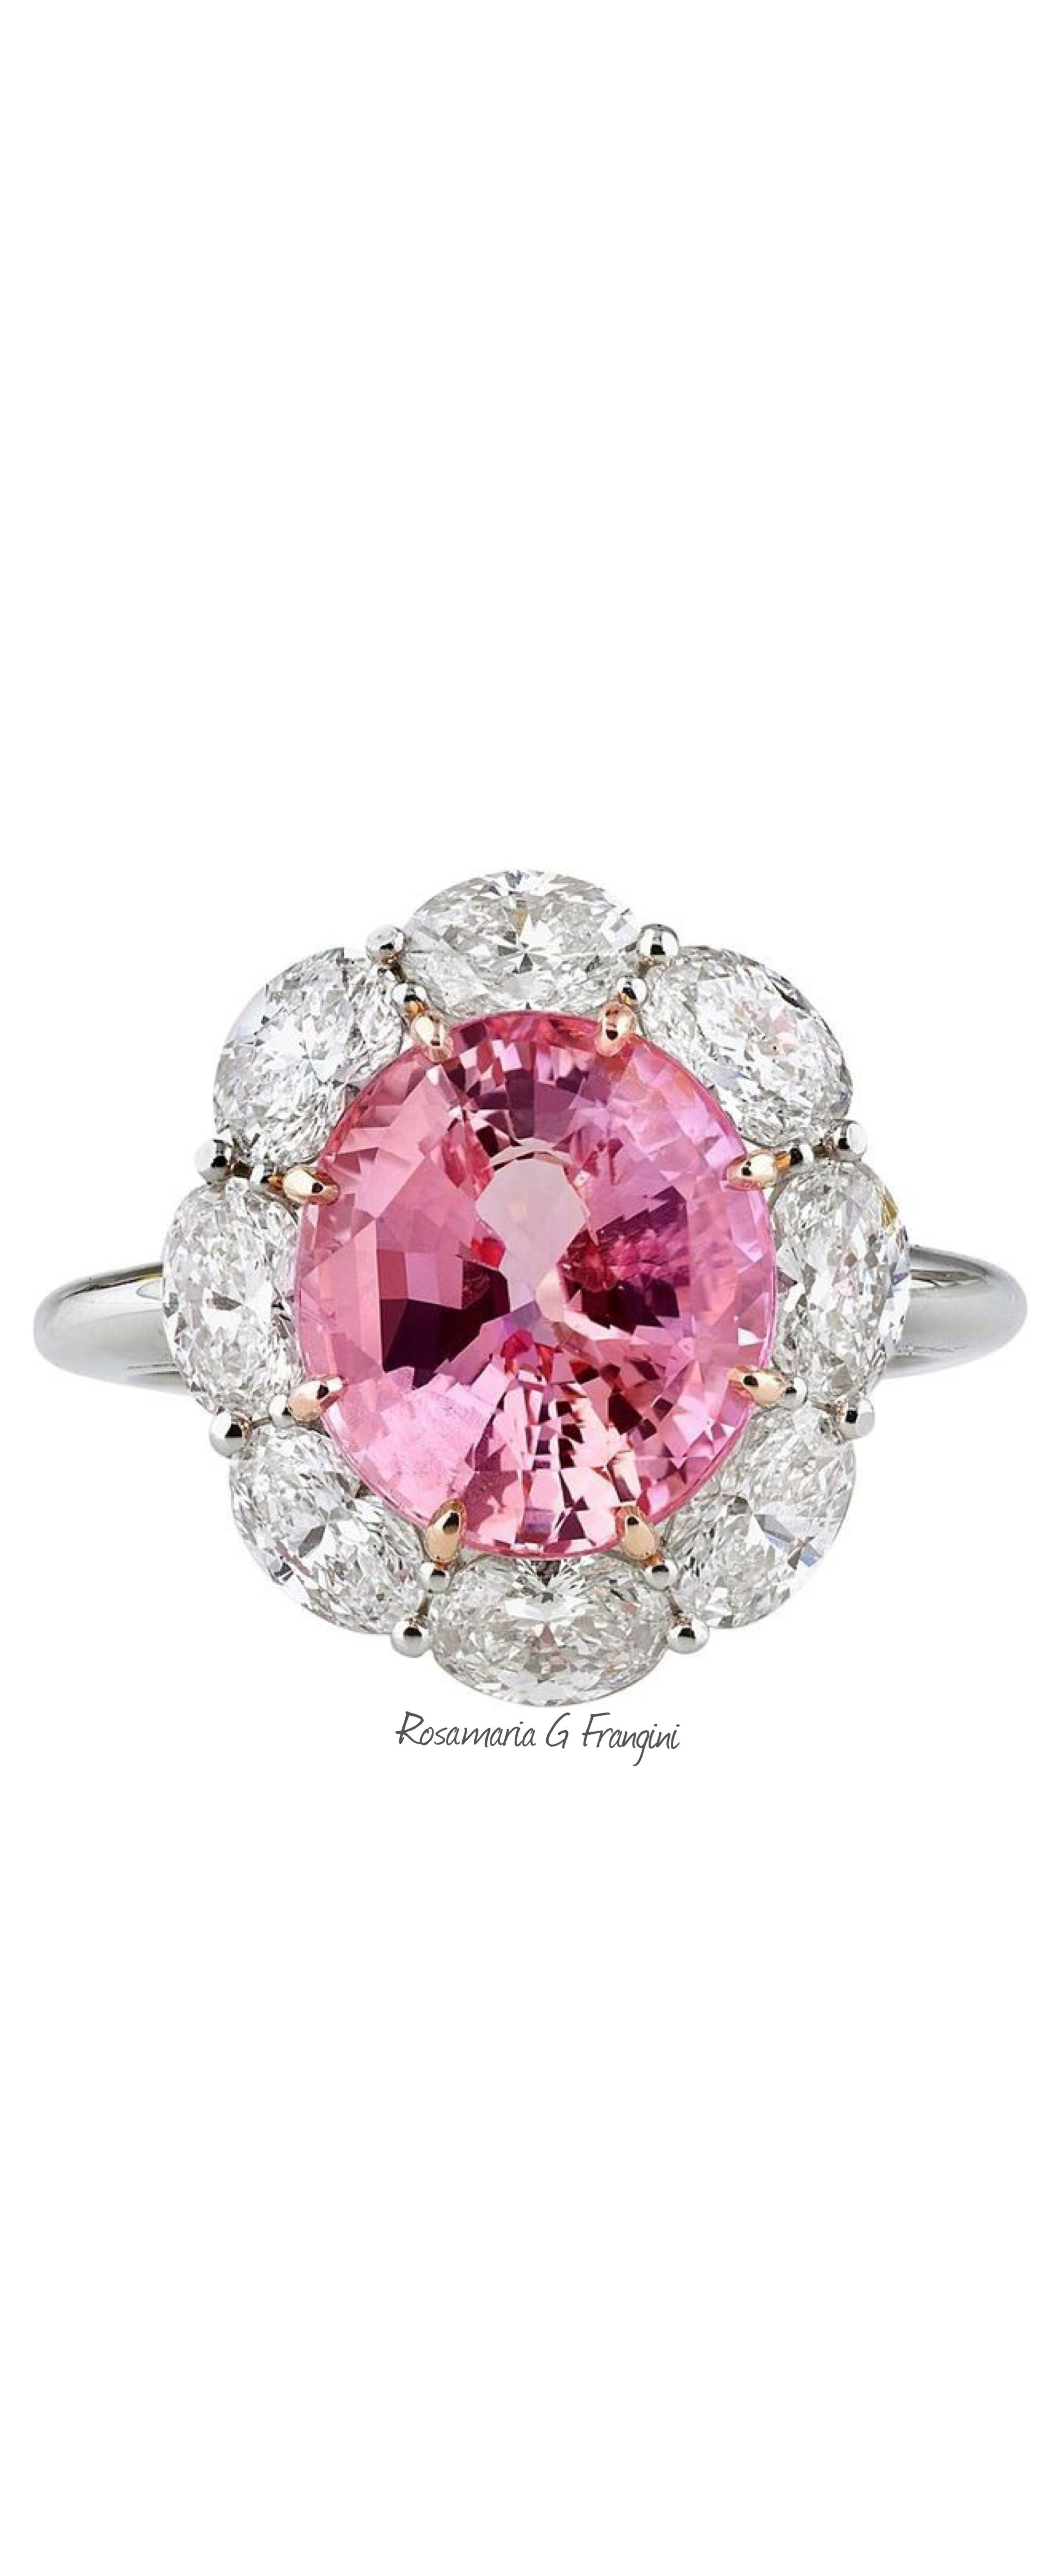 Rosamaria G Frangini | High Pink Jewellery | 5.61 Carats Untreated ...